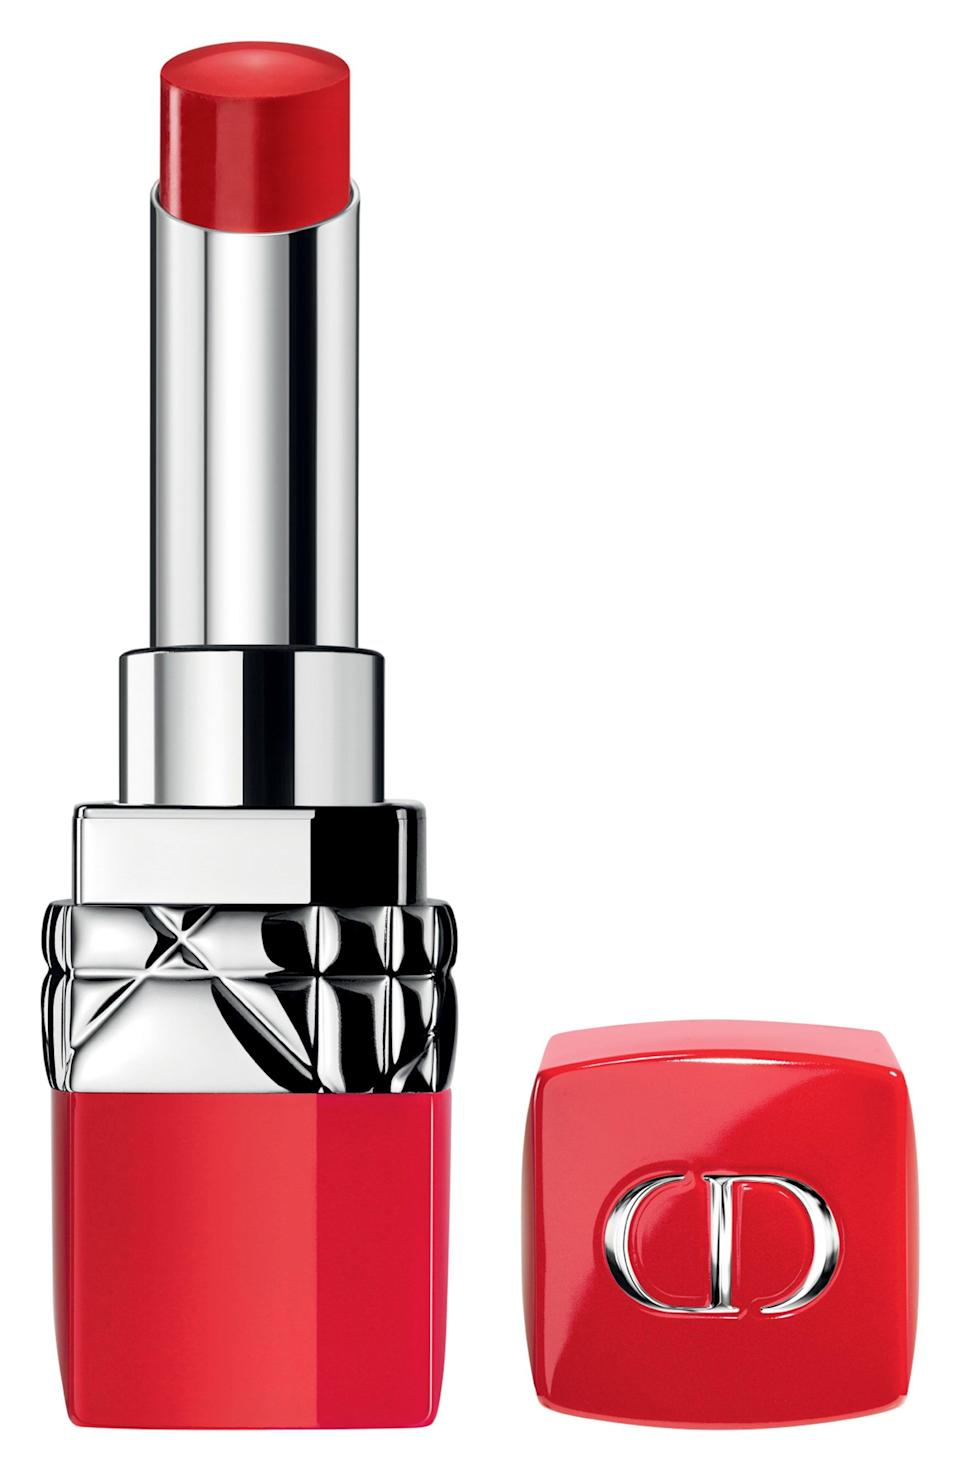 """<p><strong>Dior</strong></p><p>nordstrom.com</p><p><strong>$38.00</strong></p><p><a href=""""https://go.redirectingat.com?id=74968X1596630&url=https%3A%2F%2Fshop.nordstrom.com%2Fs%2Fdior-rouge-dior-ultra-rouge-pigmented-hydra-lipstick%2F5044549&sref=https%3A%2F%2Fwww.townandcountrymag.com%2Fstyle%2Fg2095%2Fmothers-day-gift-ideas%2F"""" rel=""""nofollow noopener"""" target=""""_blank"""" data-ylk=""""slk:Shop Now"""" class=""""link rapid-noclick-resp"""">Shop Now</a></p><p>There is no such thing as too many red lipsticks, but this one is certain to make mom feel special every time she whips it out.</p>"""